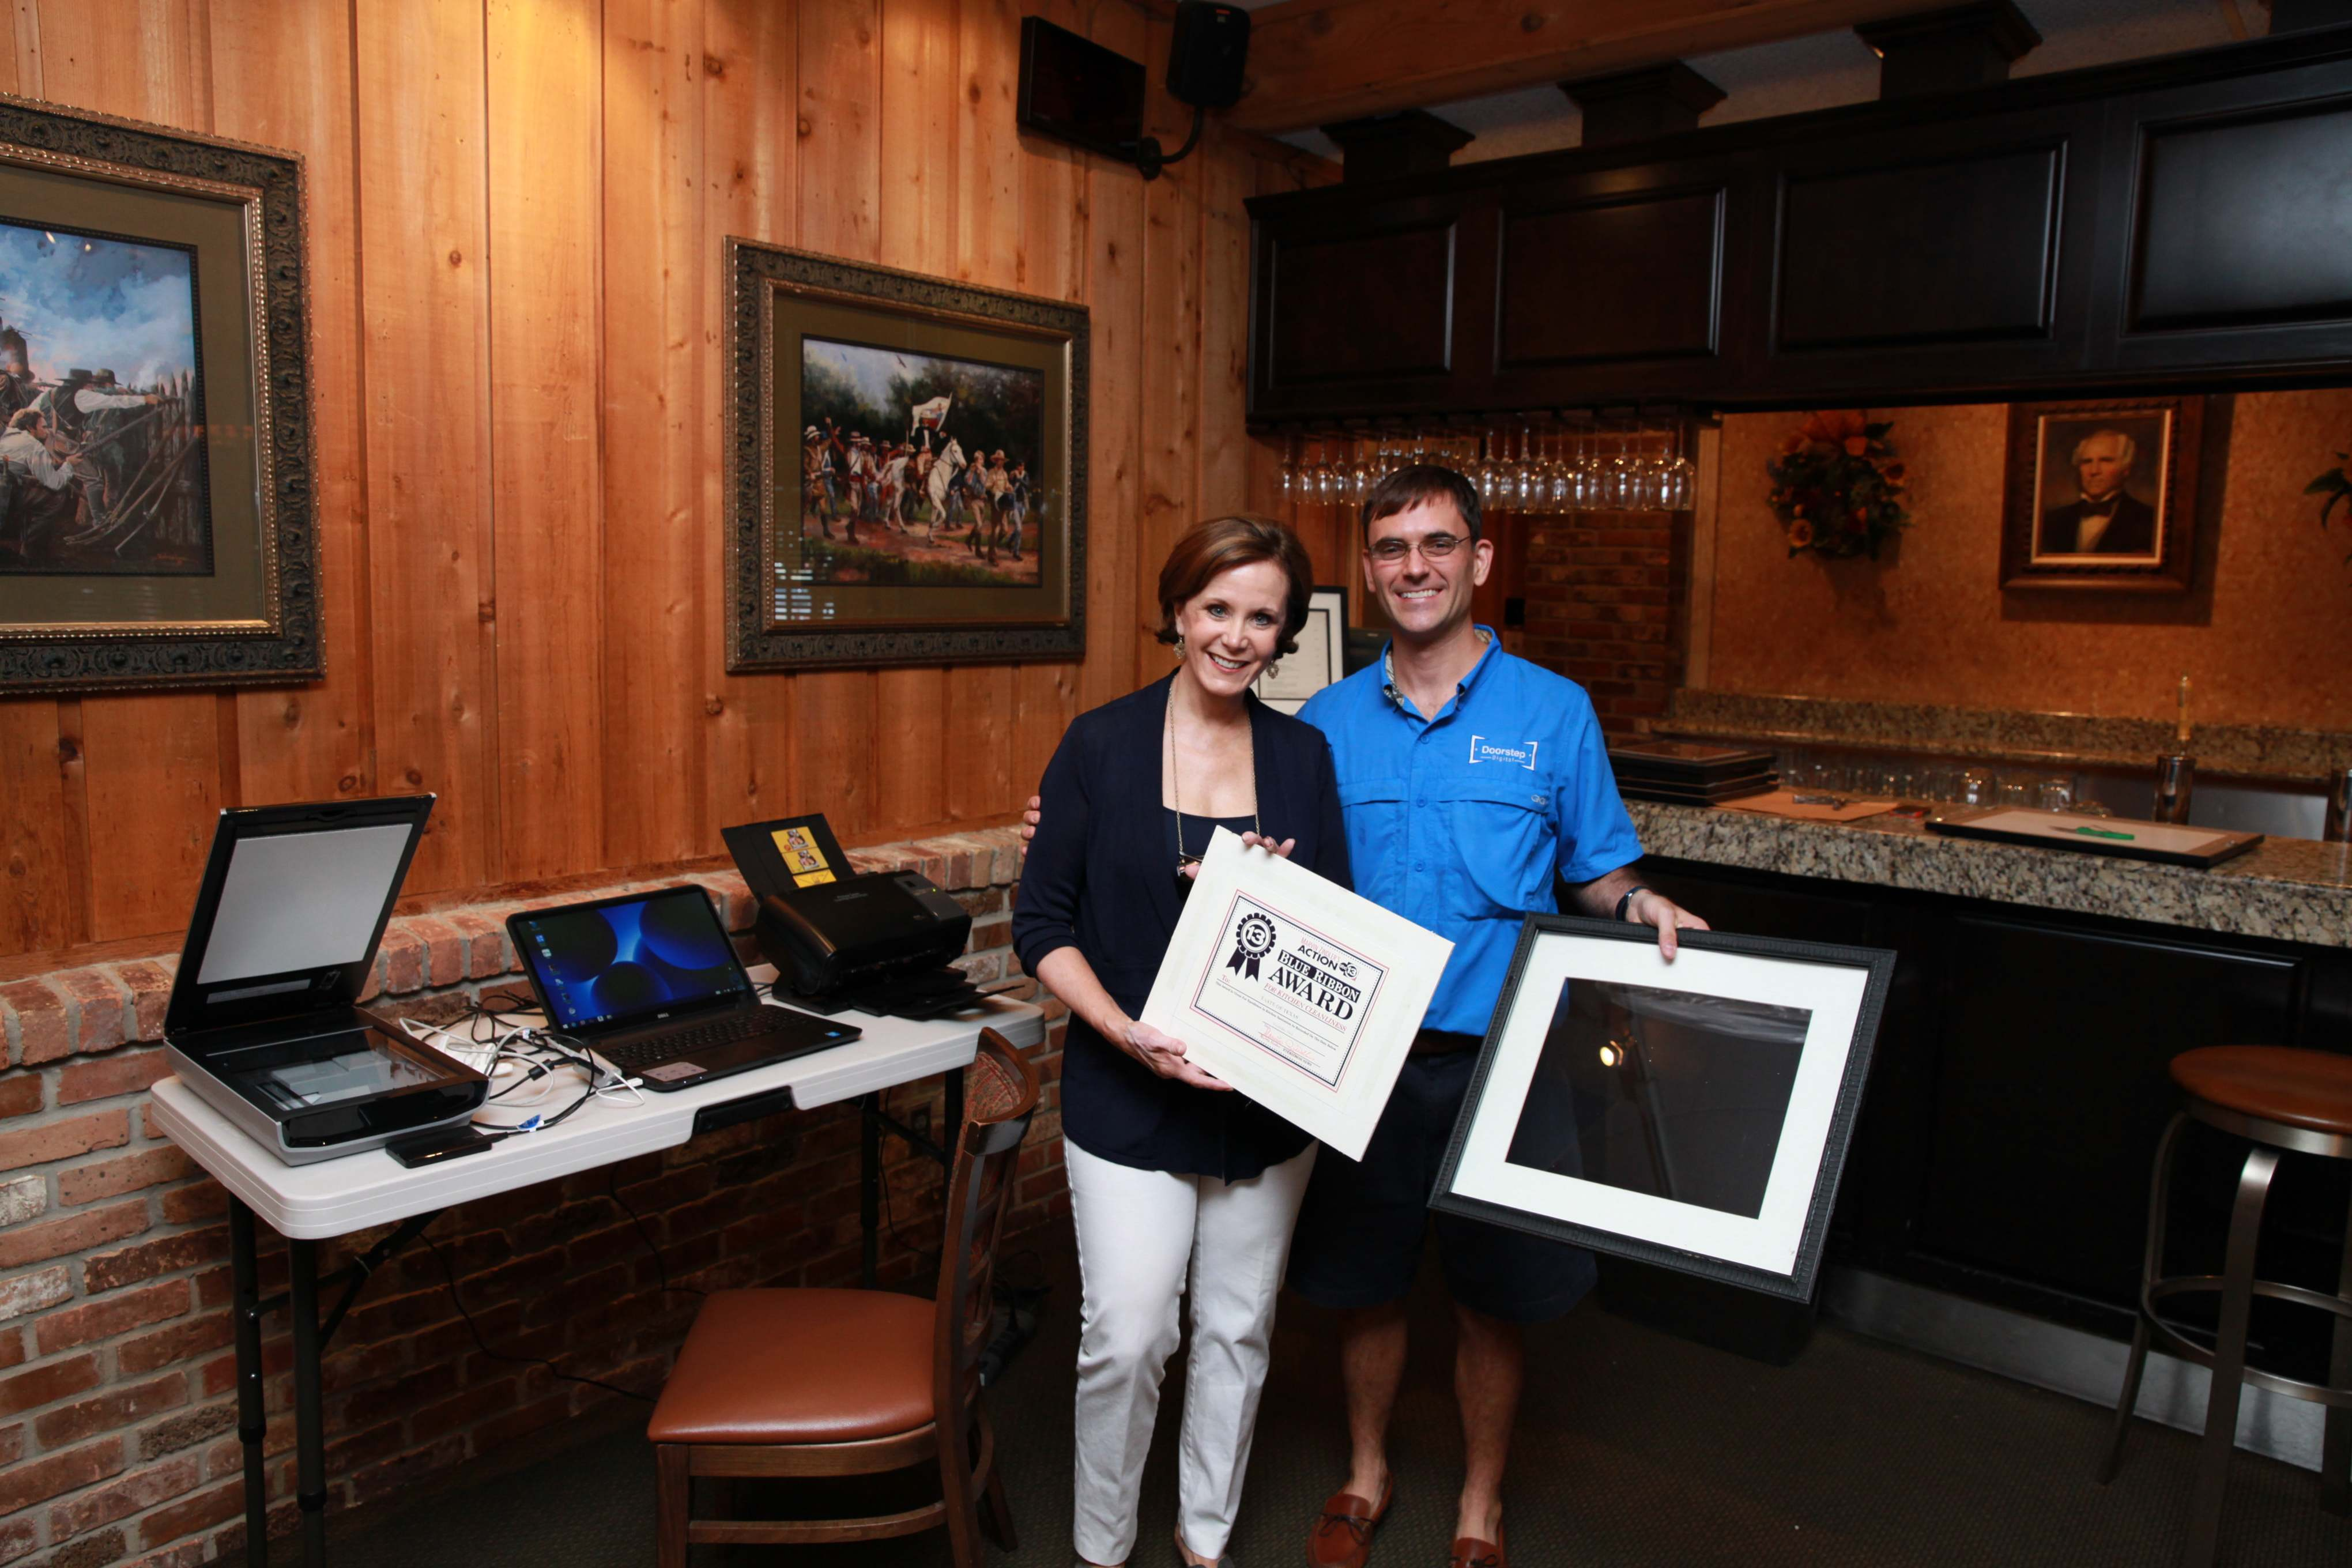 Taste of Texas Restaurant – Awards Photo Scanning Project – Sept 2014